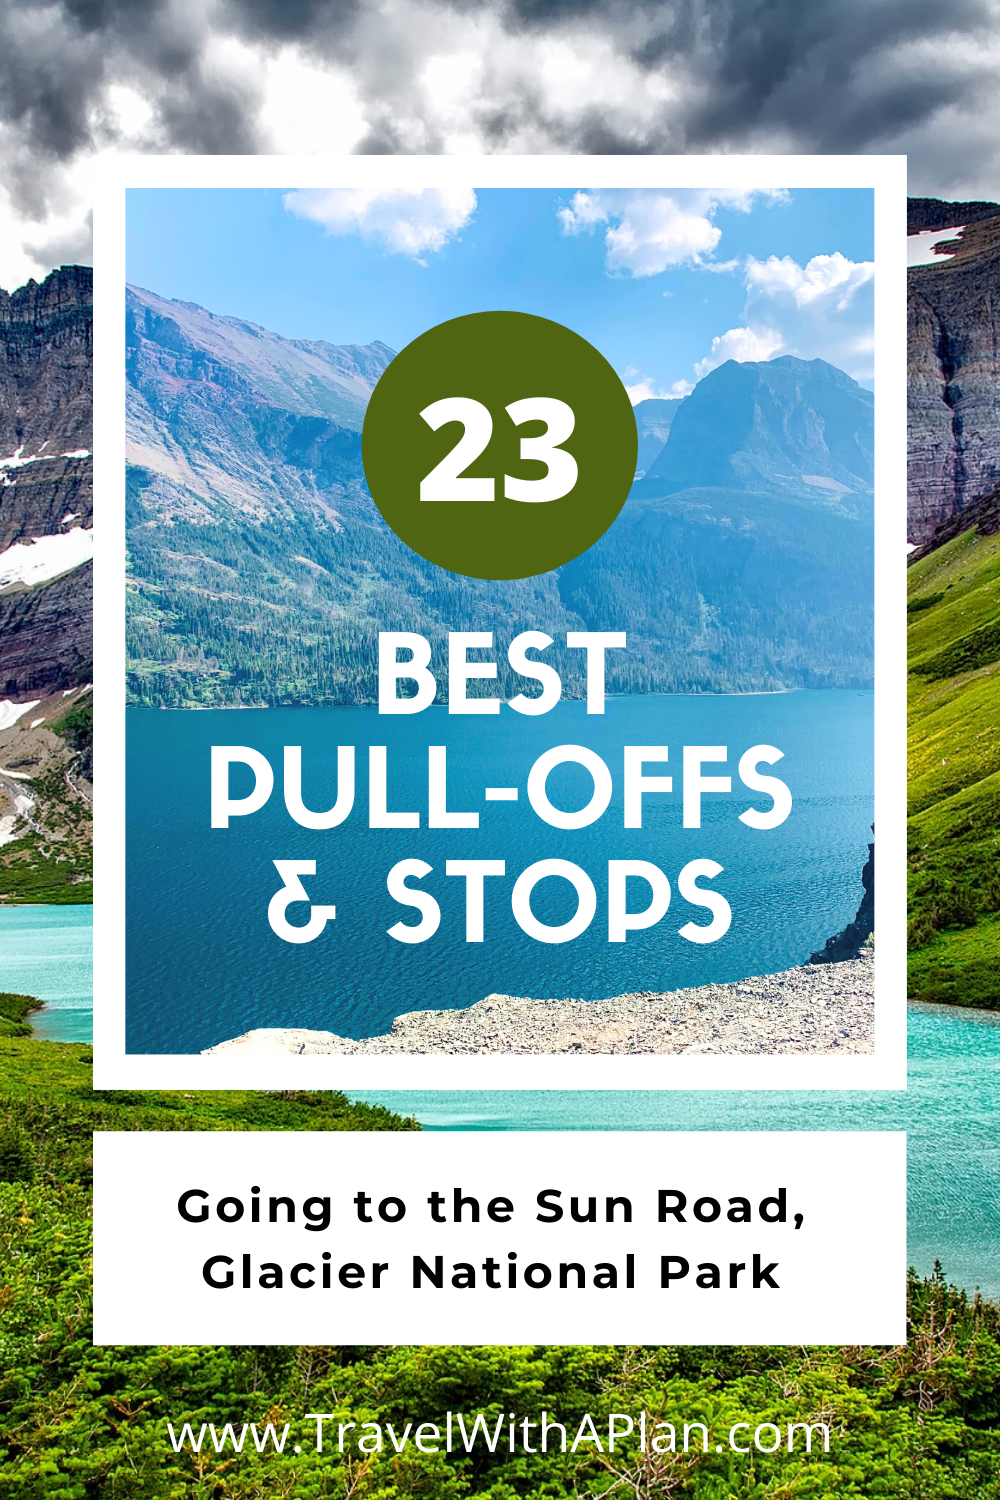 Find out the best stops on Going to the Sun Road from Top US Family Travel Blog, Travel With A Plan!